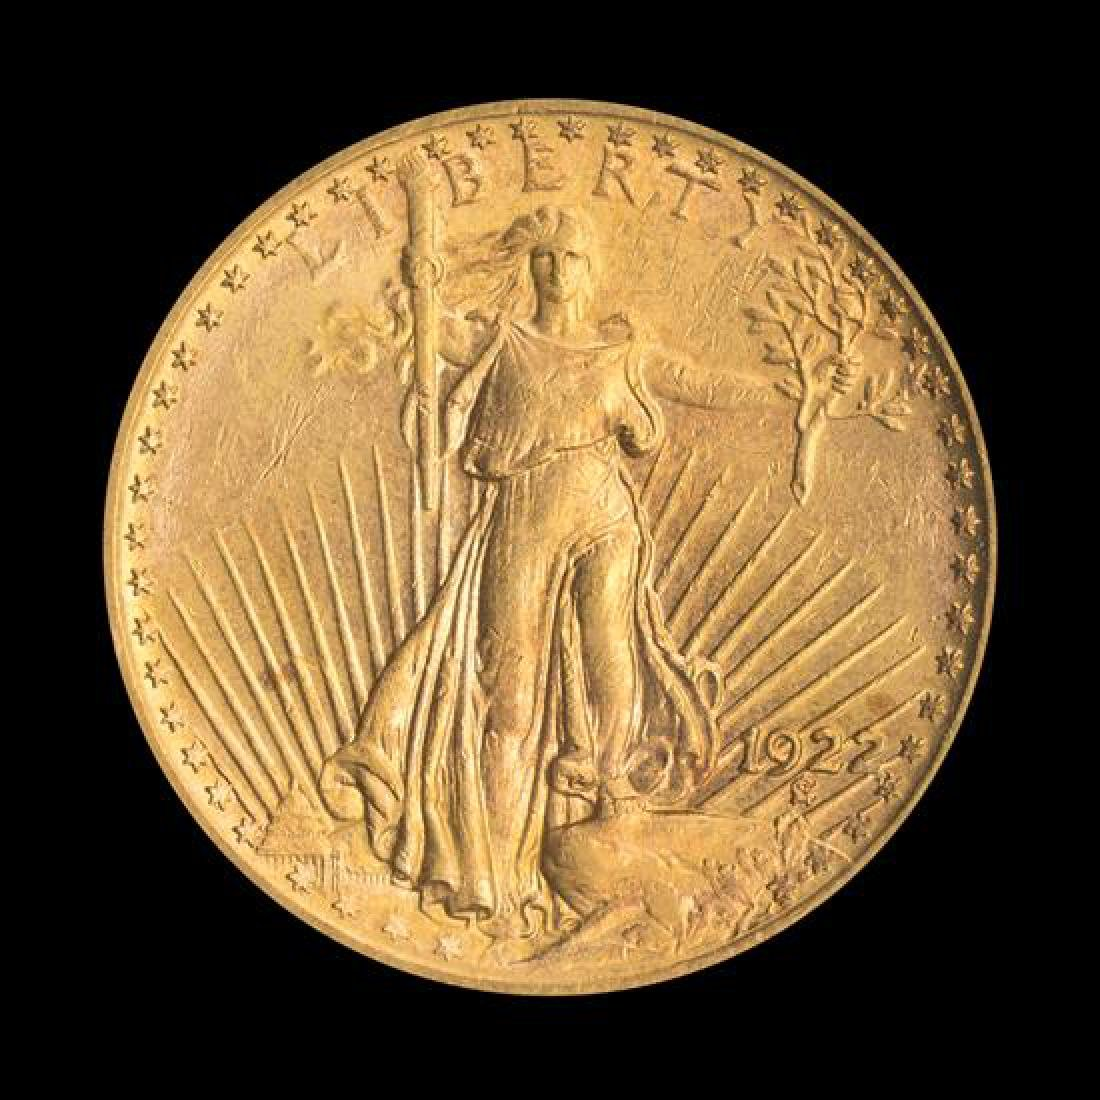 A United States 1922 Saint-Gaudens $20 Gold Coin